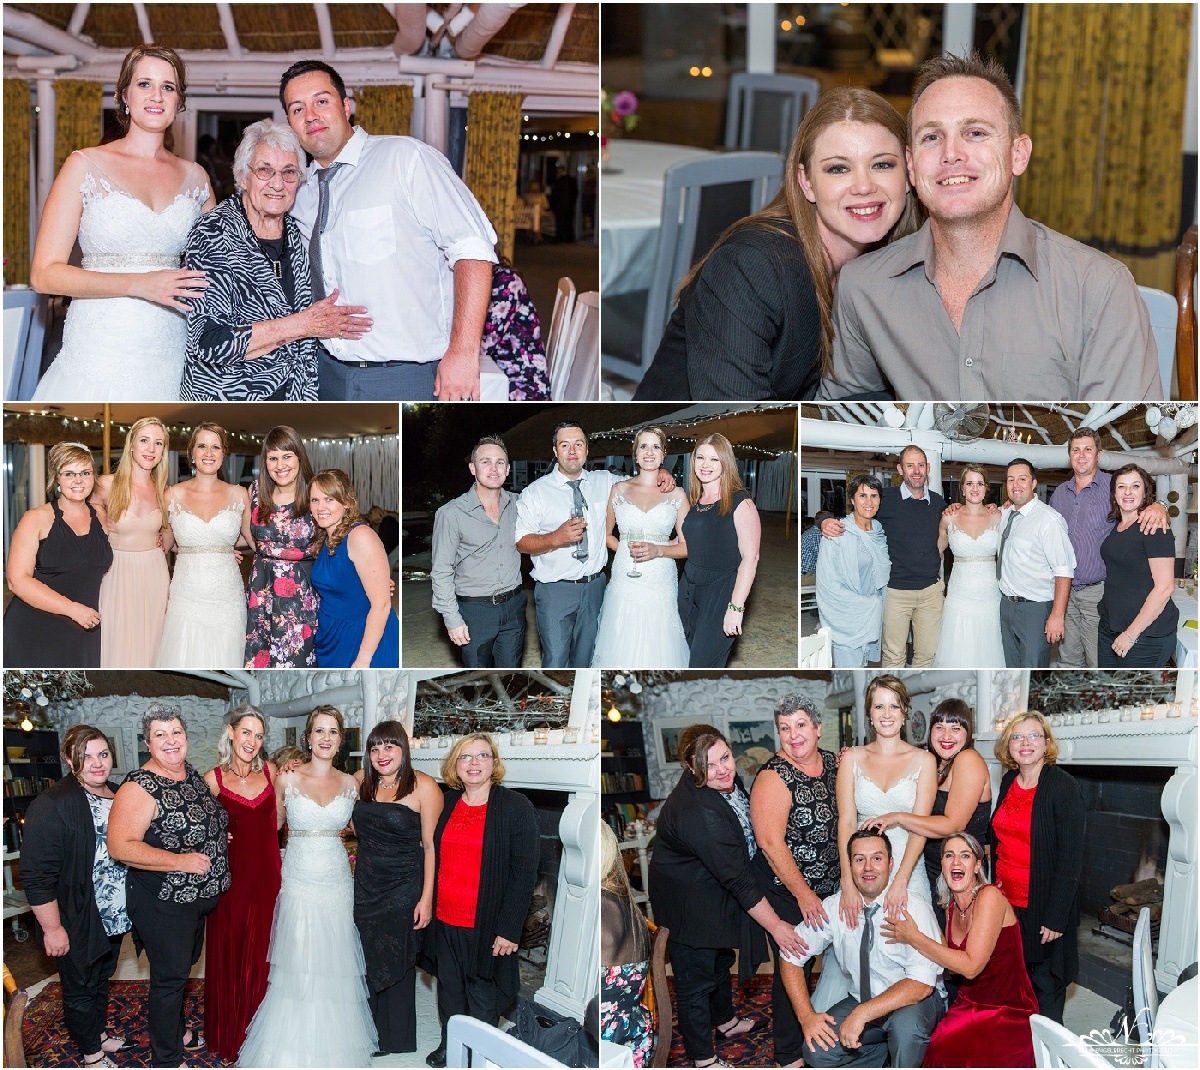 Towerbosh-wedding-photos-nelis-engelbrecht-photography-008